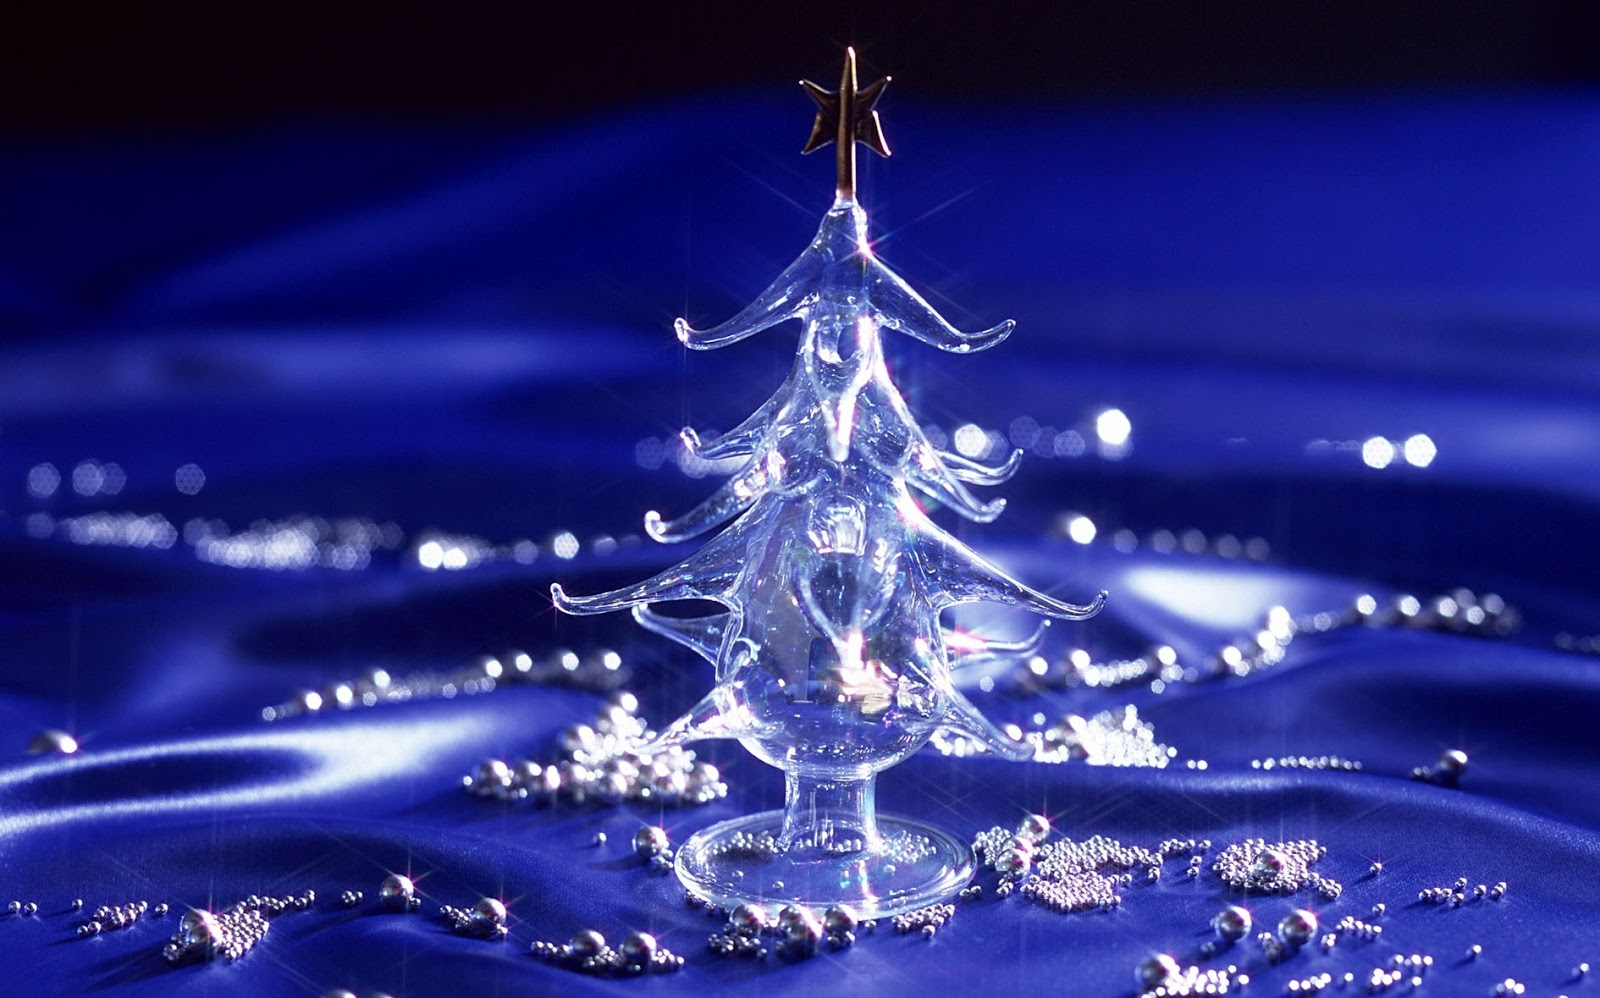 Christmas 3D Wallapapers   Christmas HD Wallpapers 1600x998